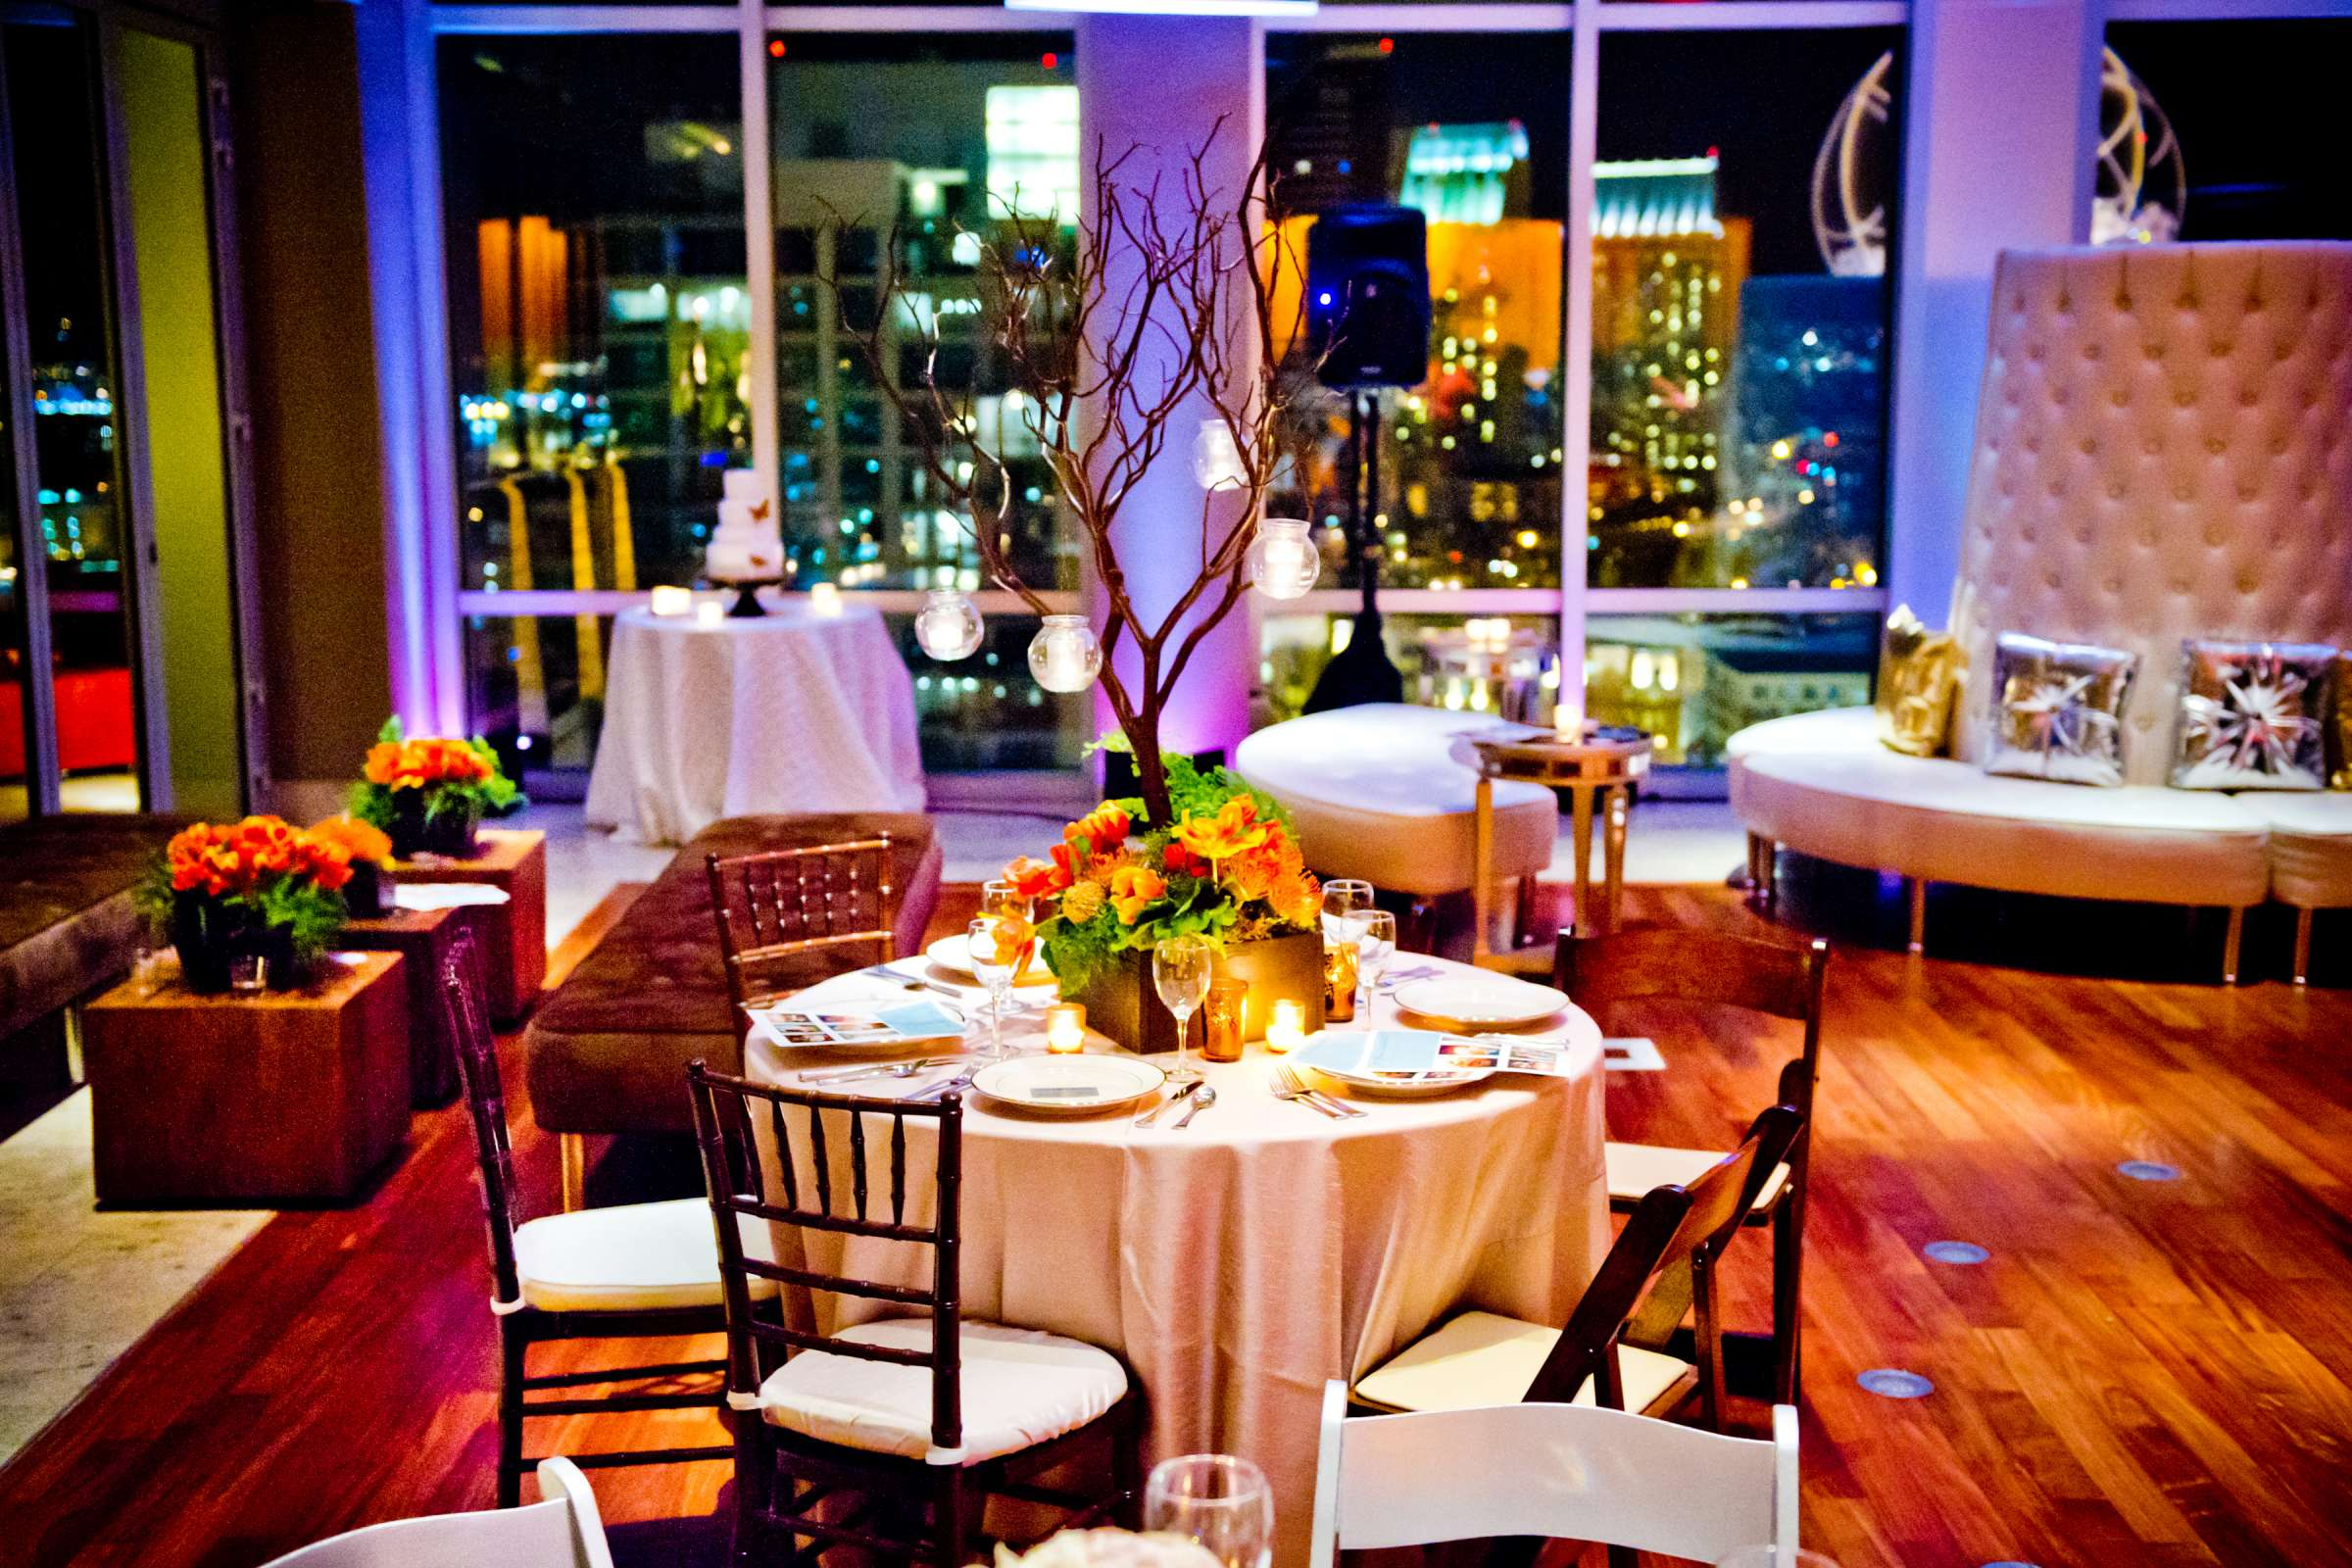 Ultimate Skybox Wedding coordinated by Creative Affairs Inc, Open House Wedding Photo #4 by True Photography